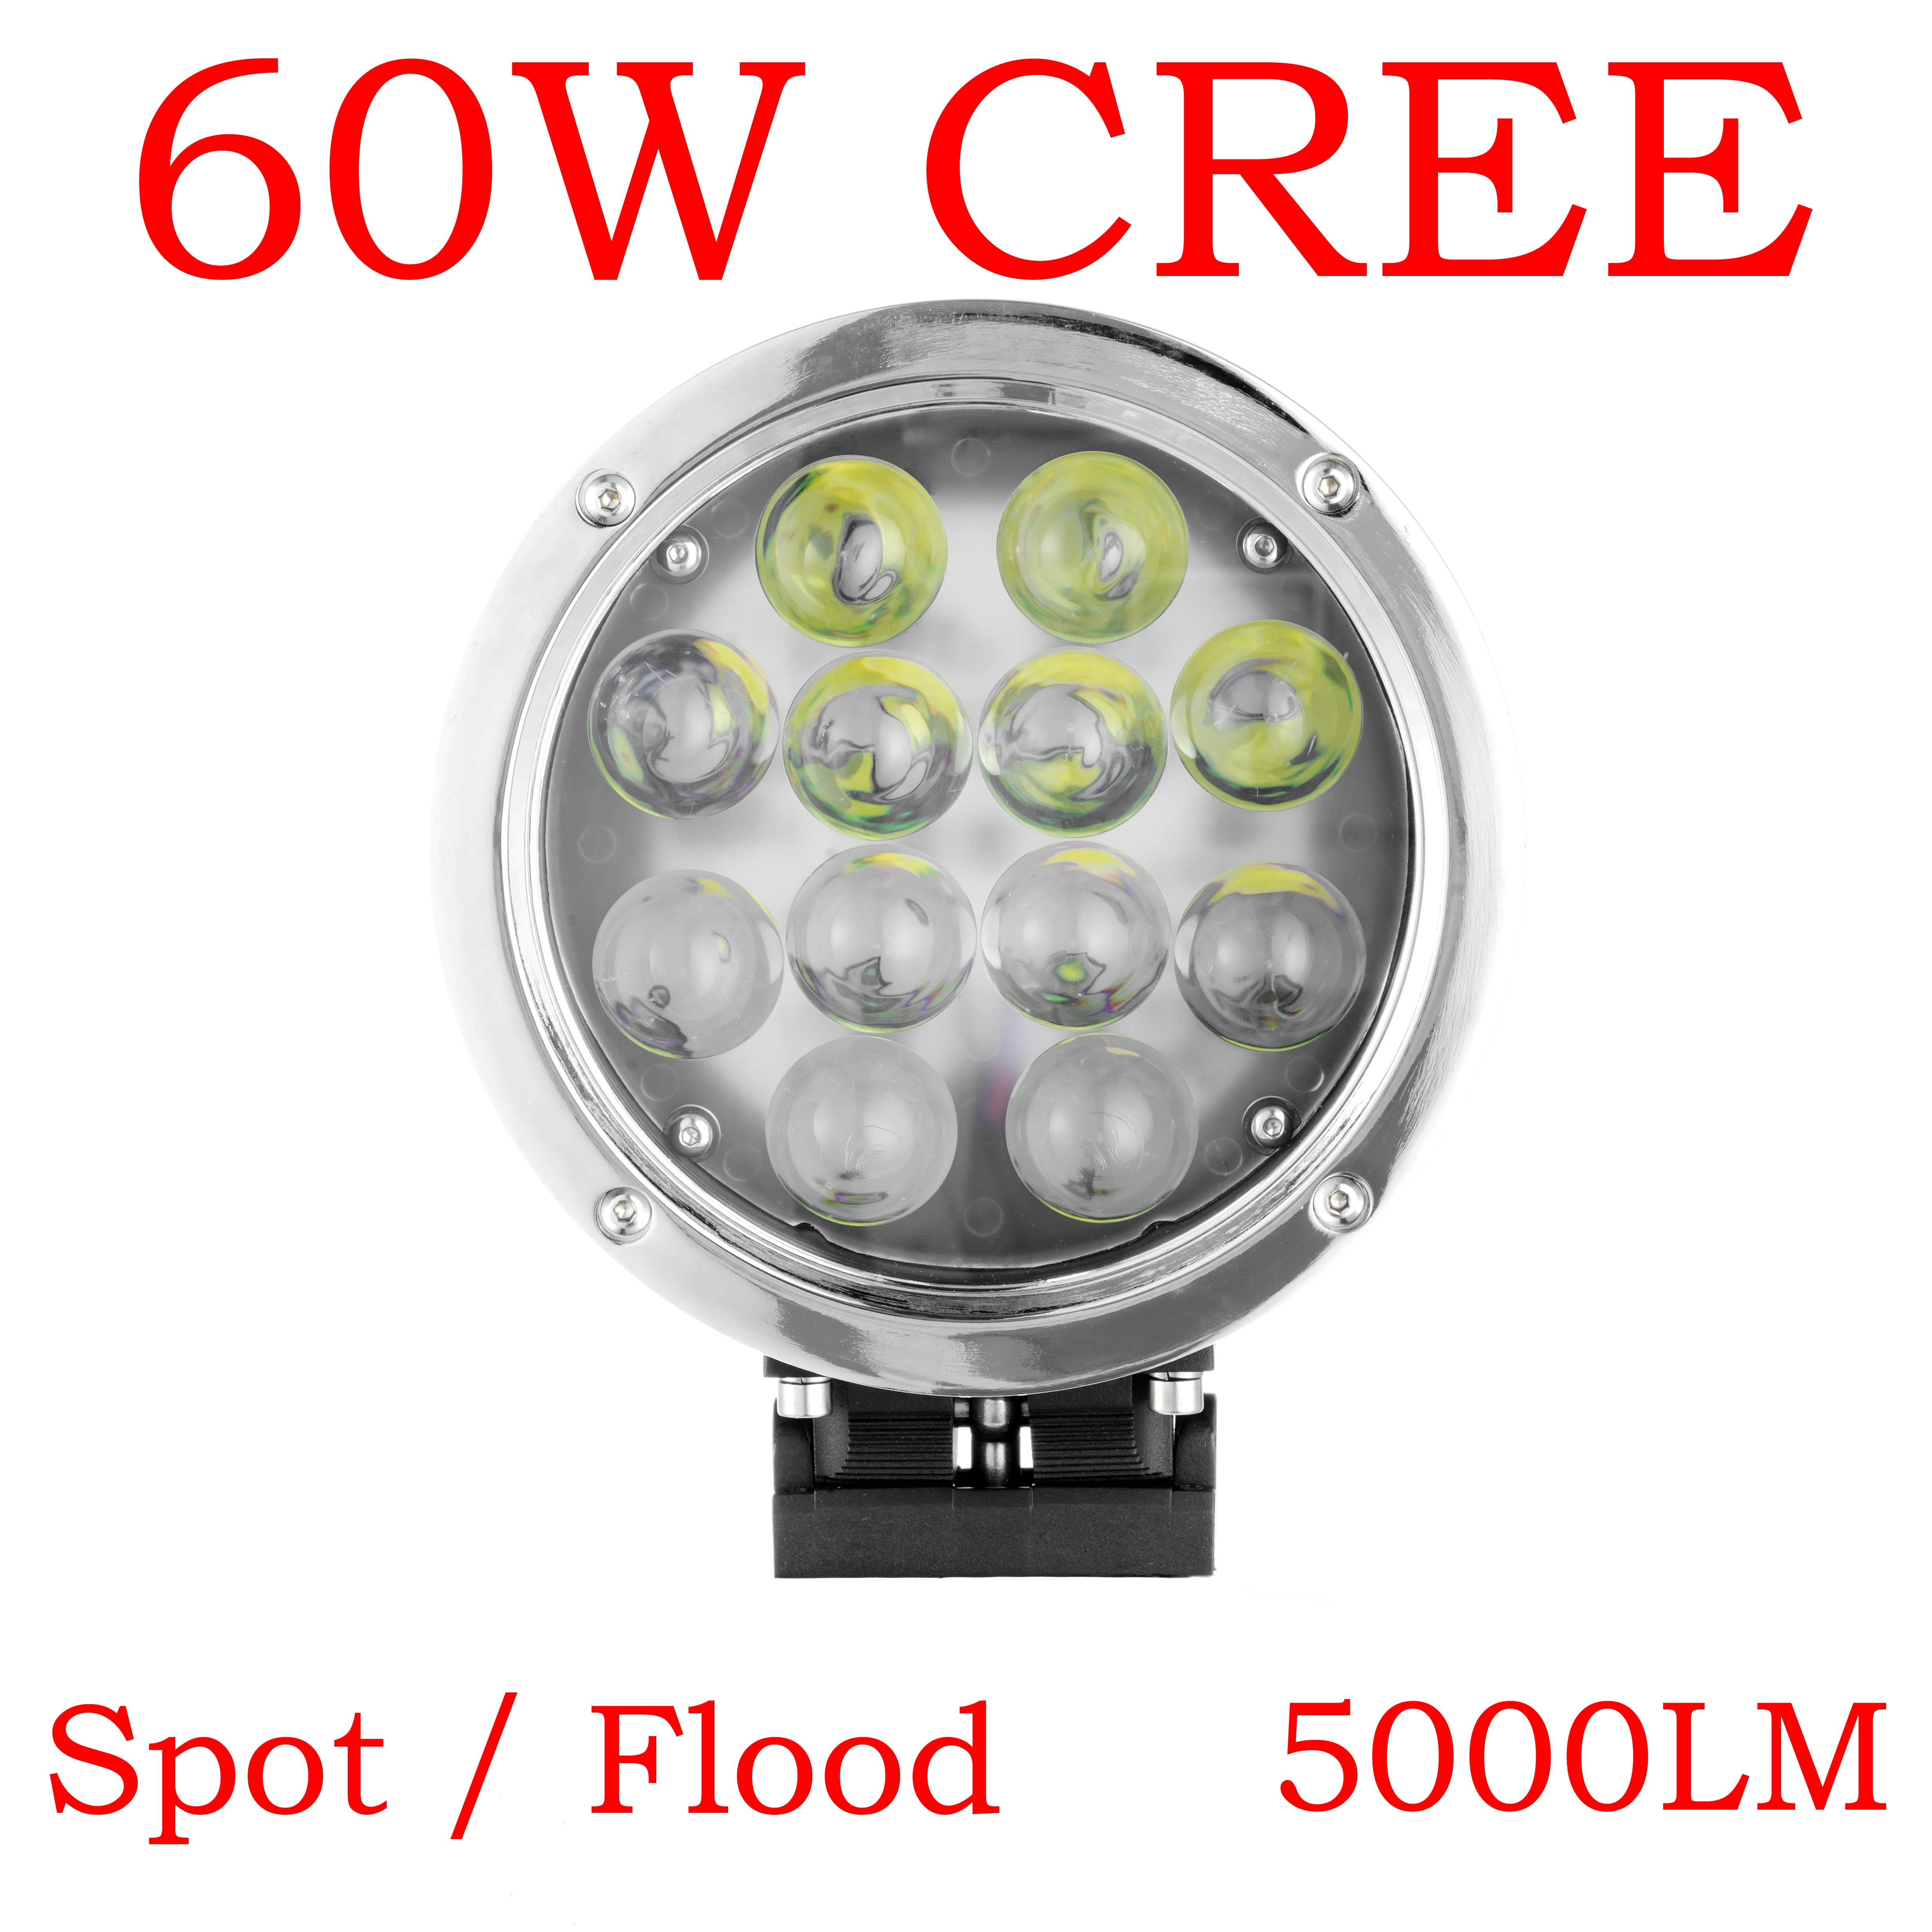 12v 24v 60w Cree Led Working Light Spot Flood Lamp Motorcycle Tractor Truck Trailer Suv Jeep Off Road Headlight Floodlight Led Work Light Cree Led Work Lights